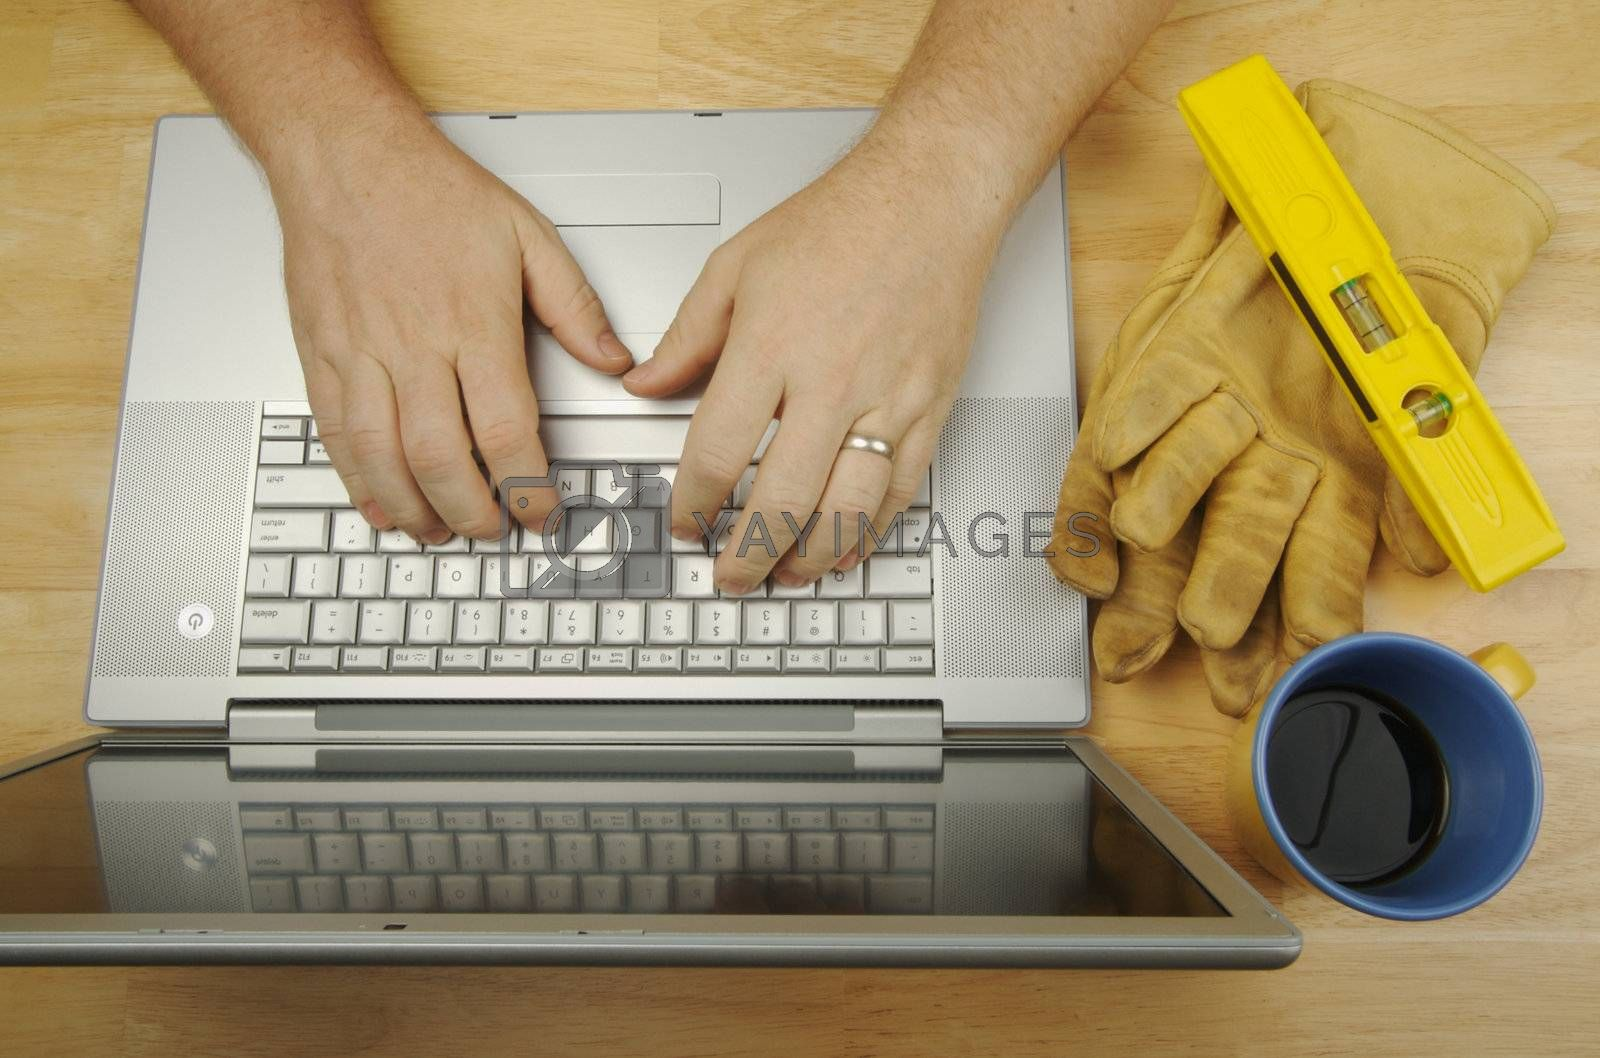 Contractor Reviews Project on Laptop with level, gloves and coffee to his side. Great image for online information regarding home improvement, additions, remodeling or construction.